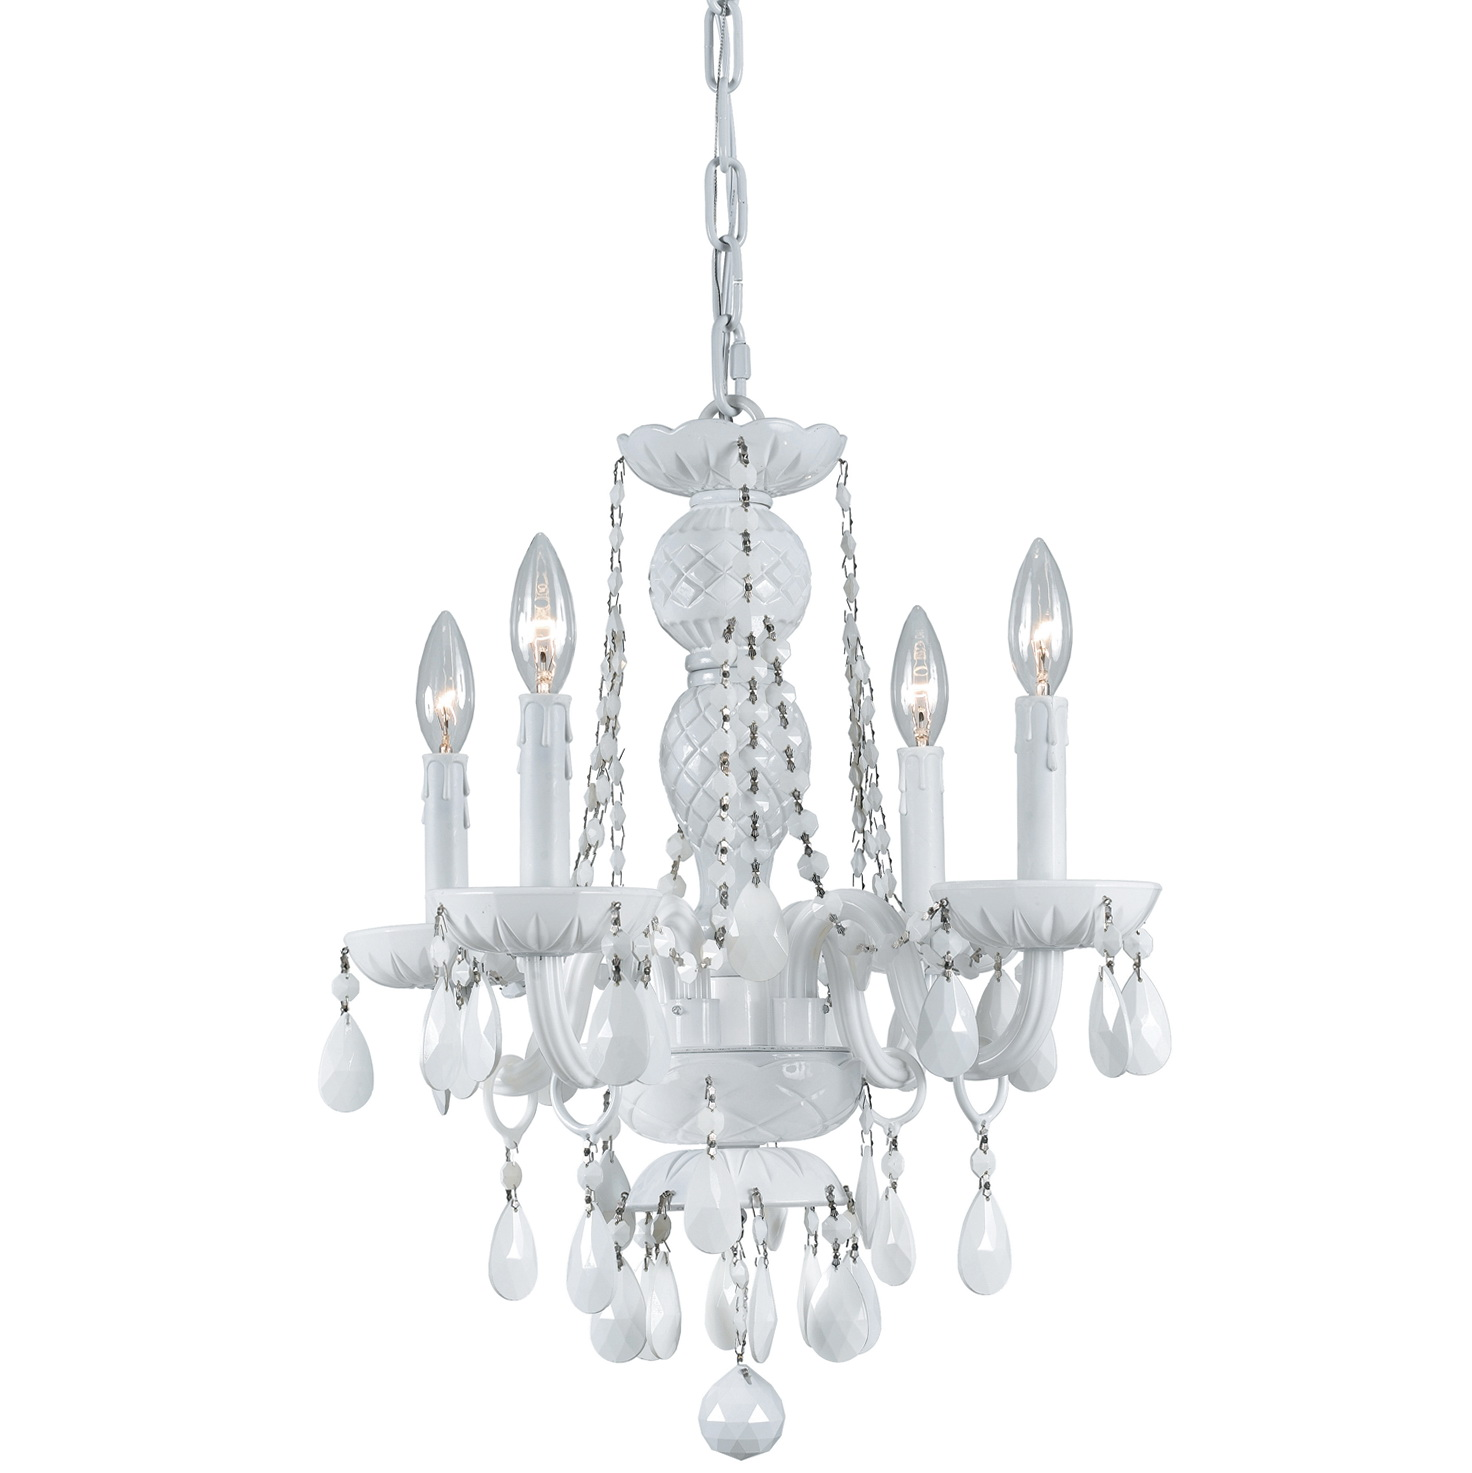 Small Chandelier For Bathroom